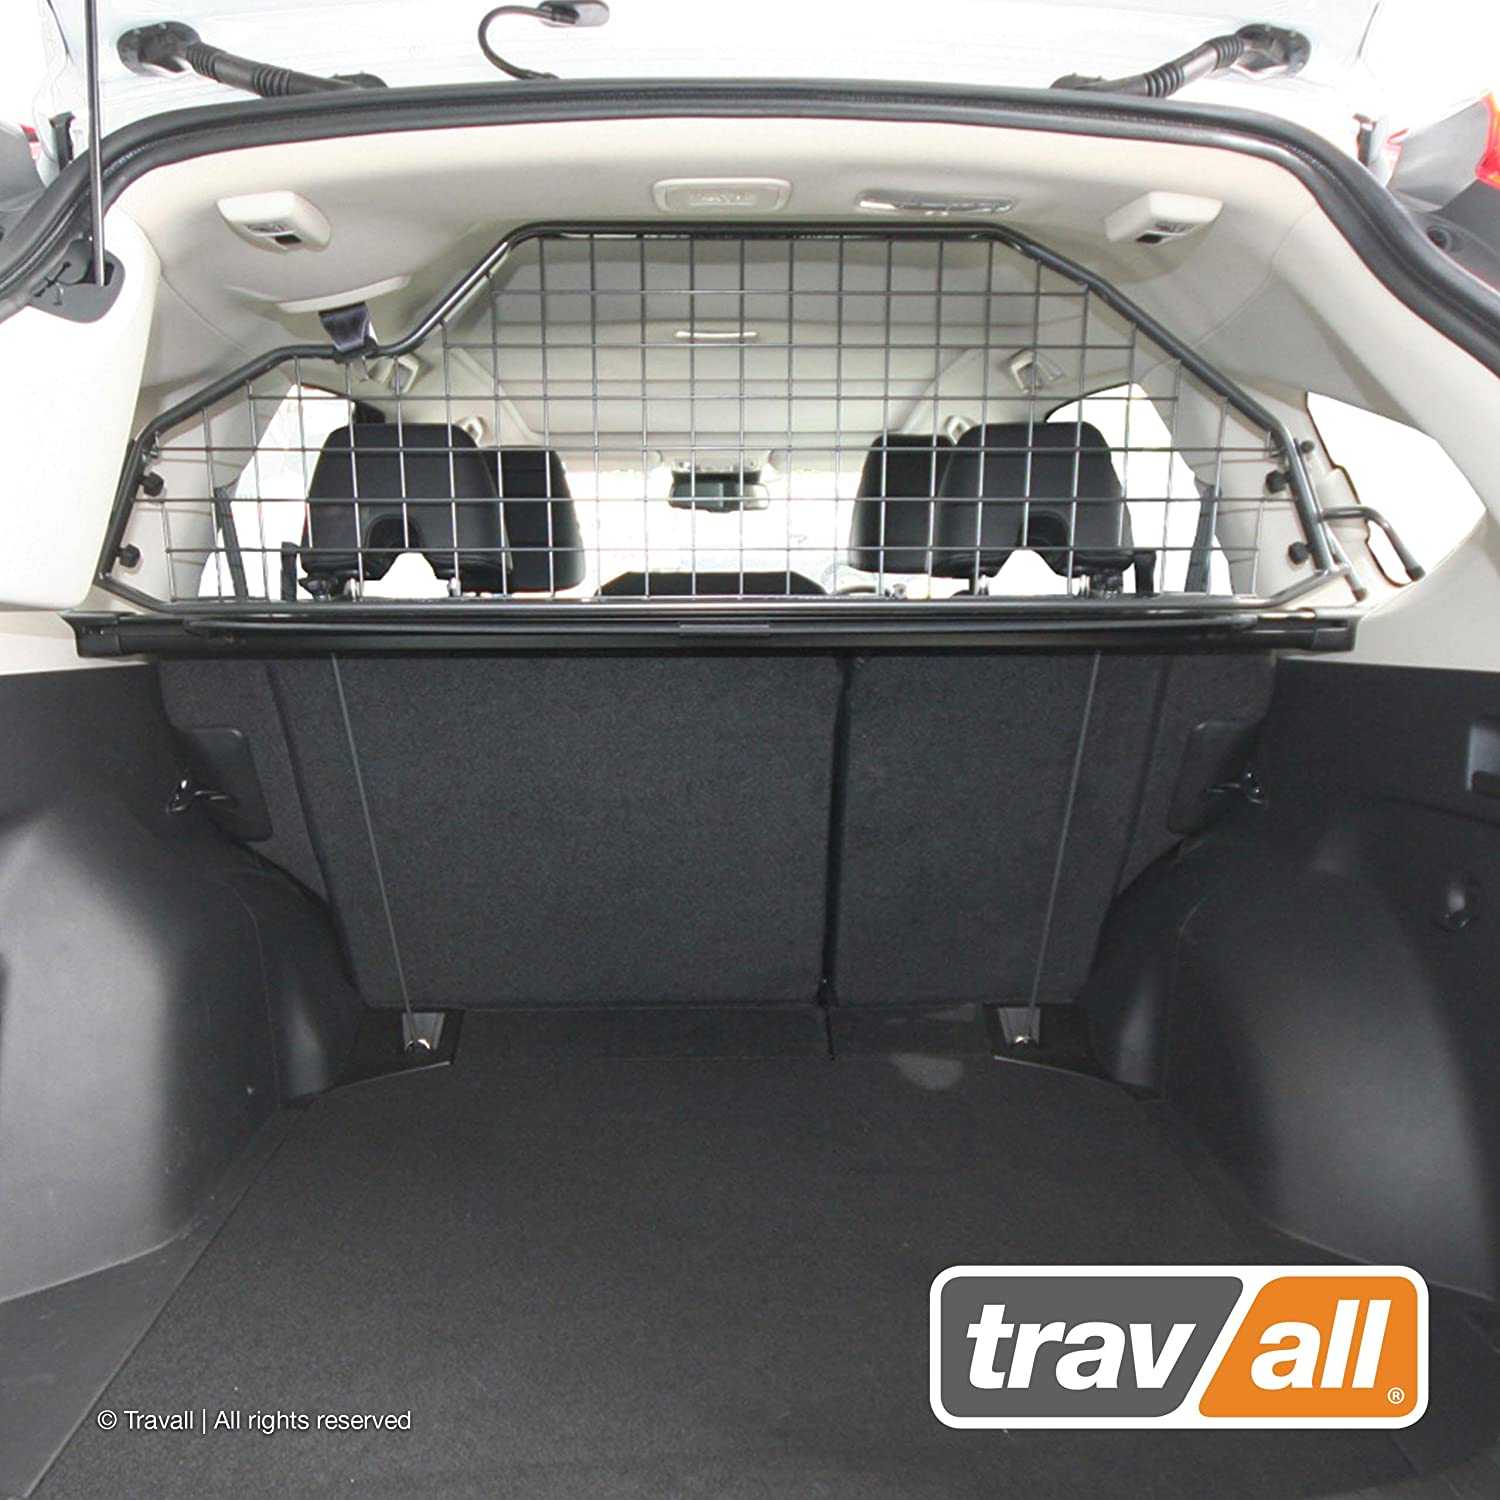 Travall Guard Compatible with Honda CR-V Automatic Models 2011-2016 TDG1392 – Rattle-Free Luggage and Pet Barrier